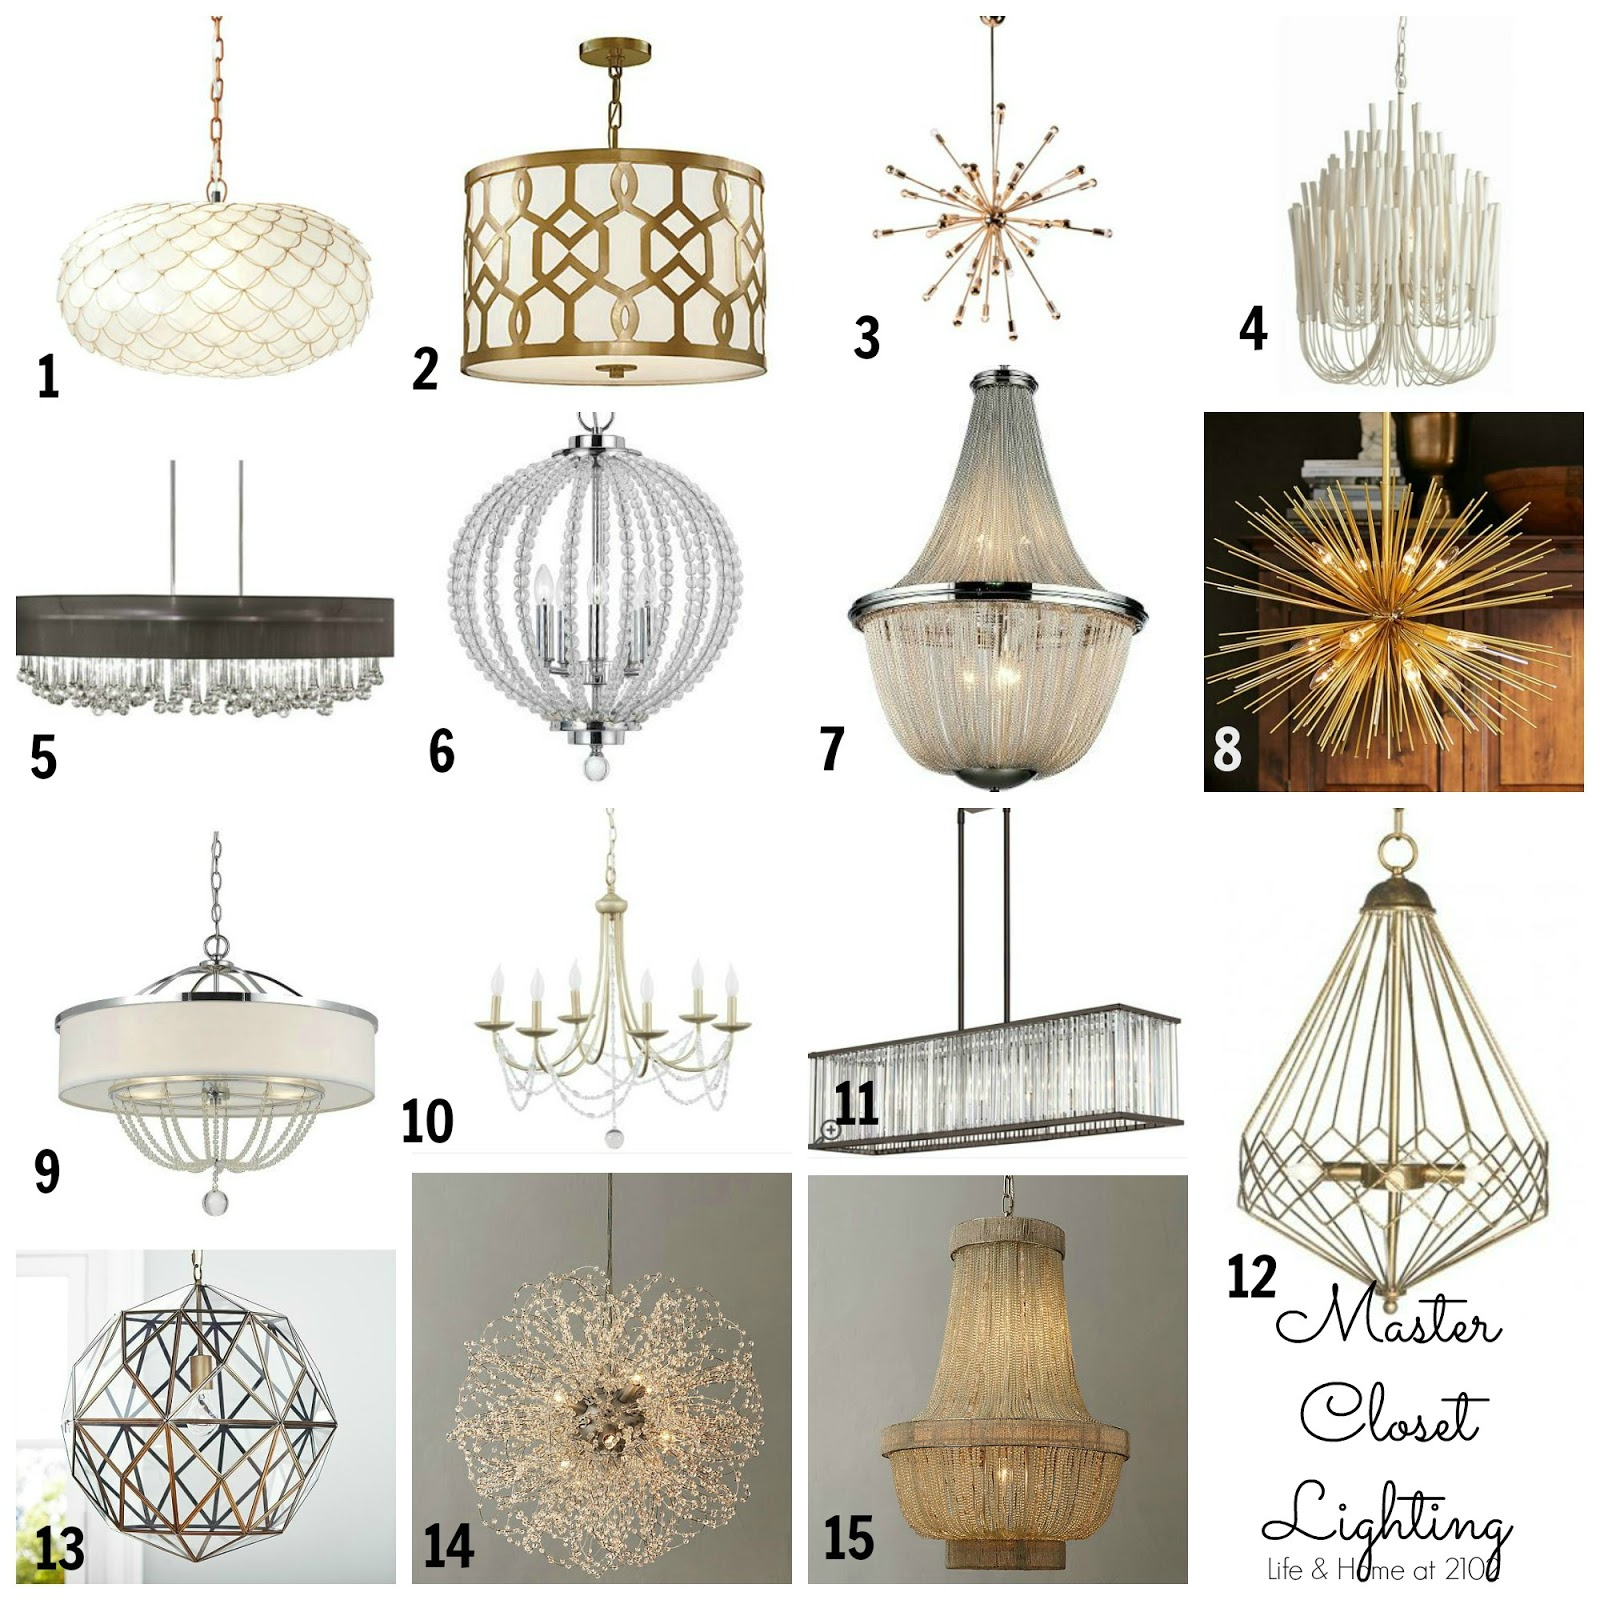 1 Capiz Scalloped Chandelier 2 Asti Pendant 3 24 Light 4 Tilda 5 Wood Tamara 8 Drum 6 Cal Lighting